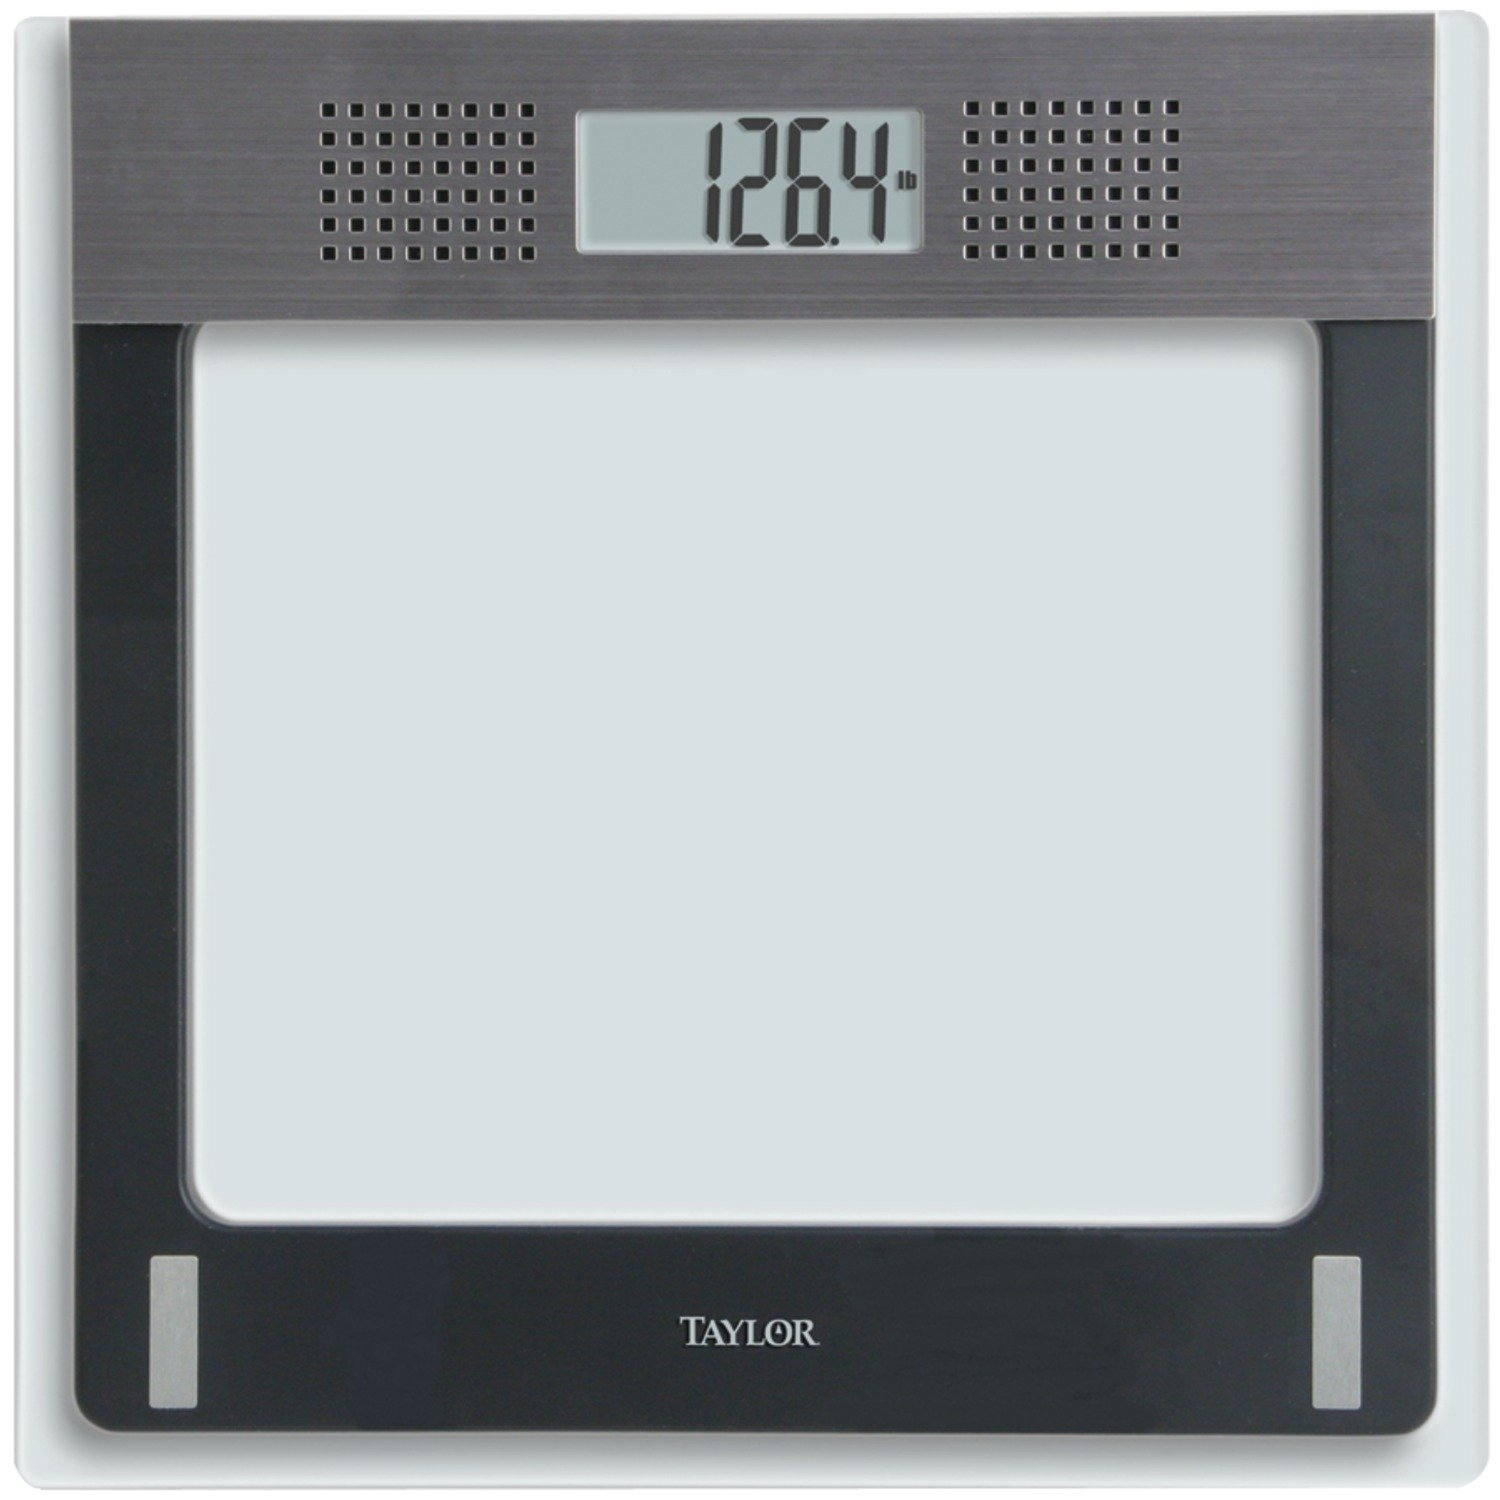 Taylor 7084 Precision Electronic Glass Talking Scale